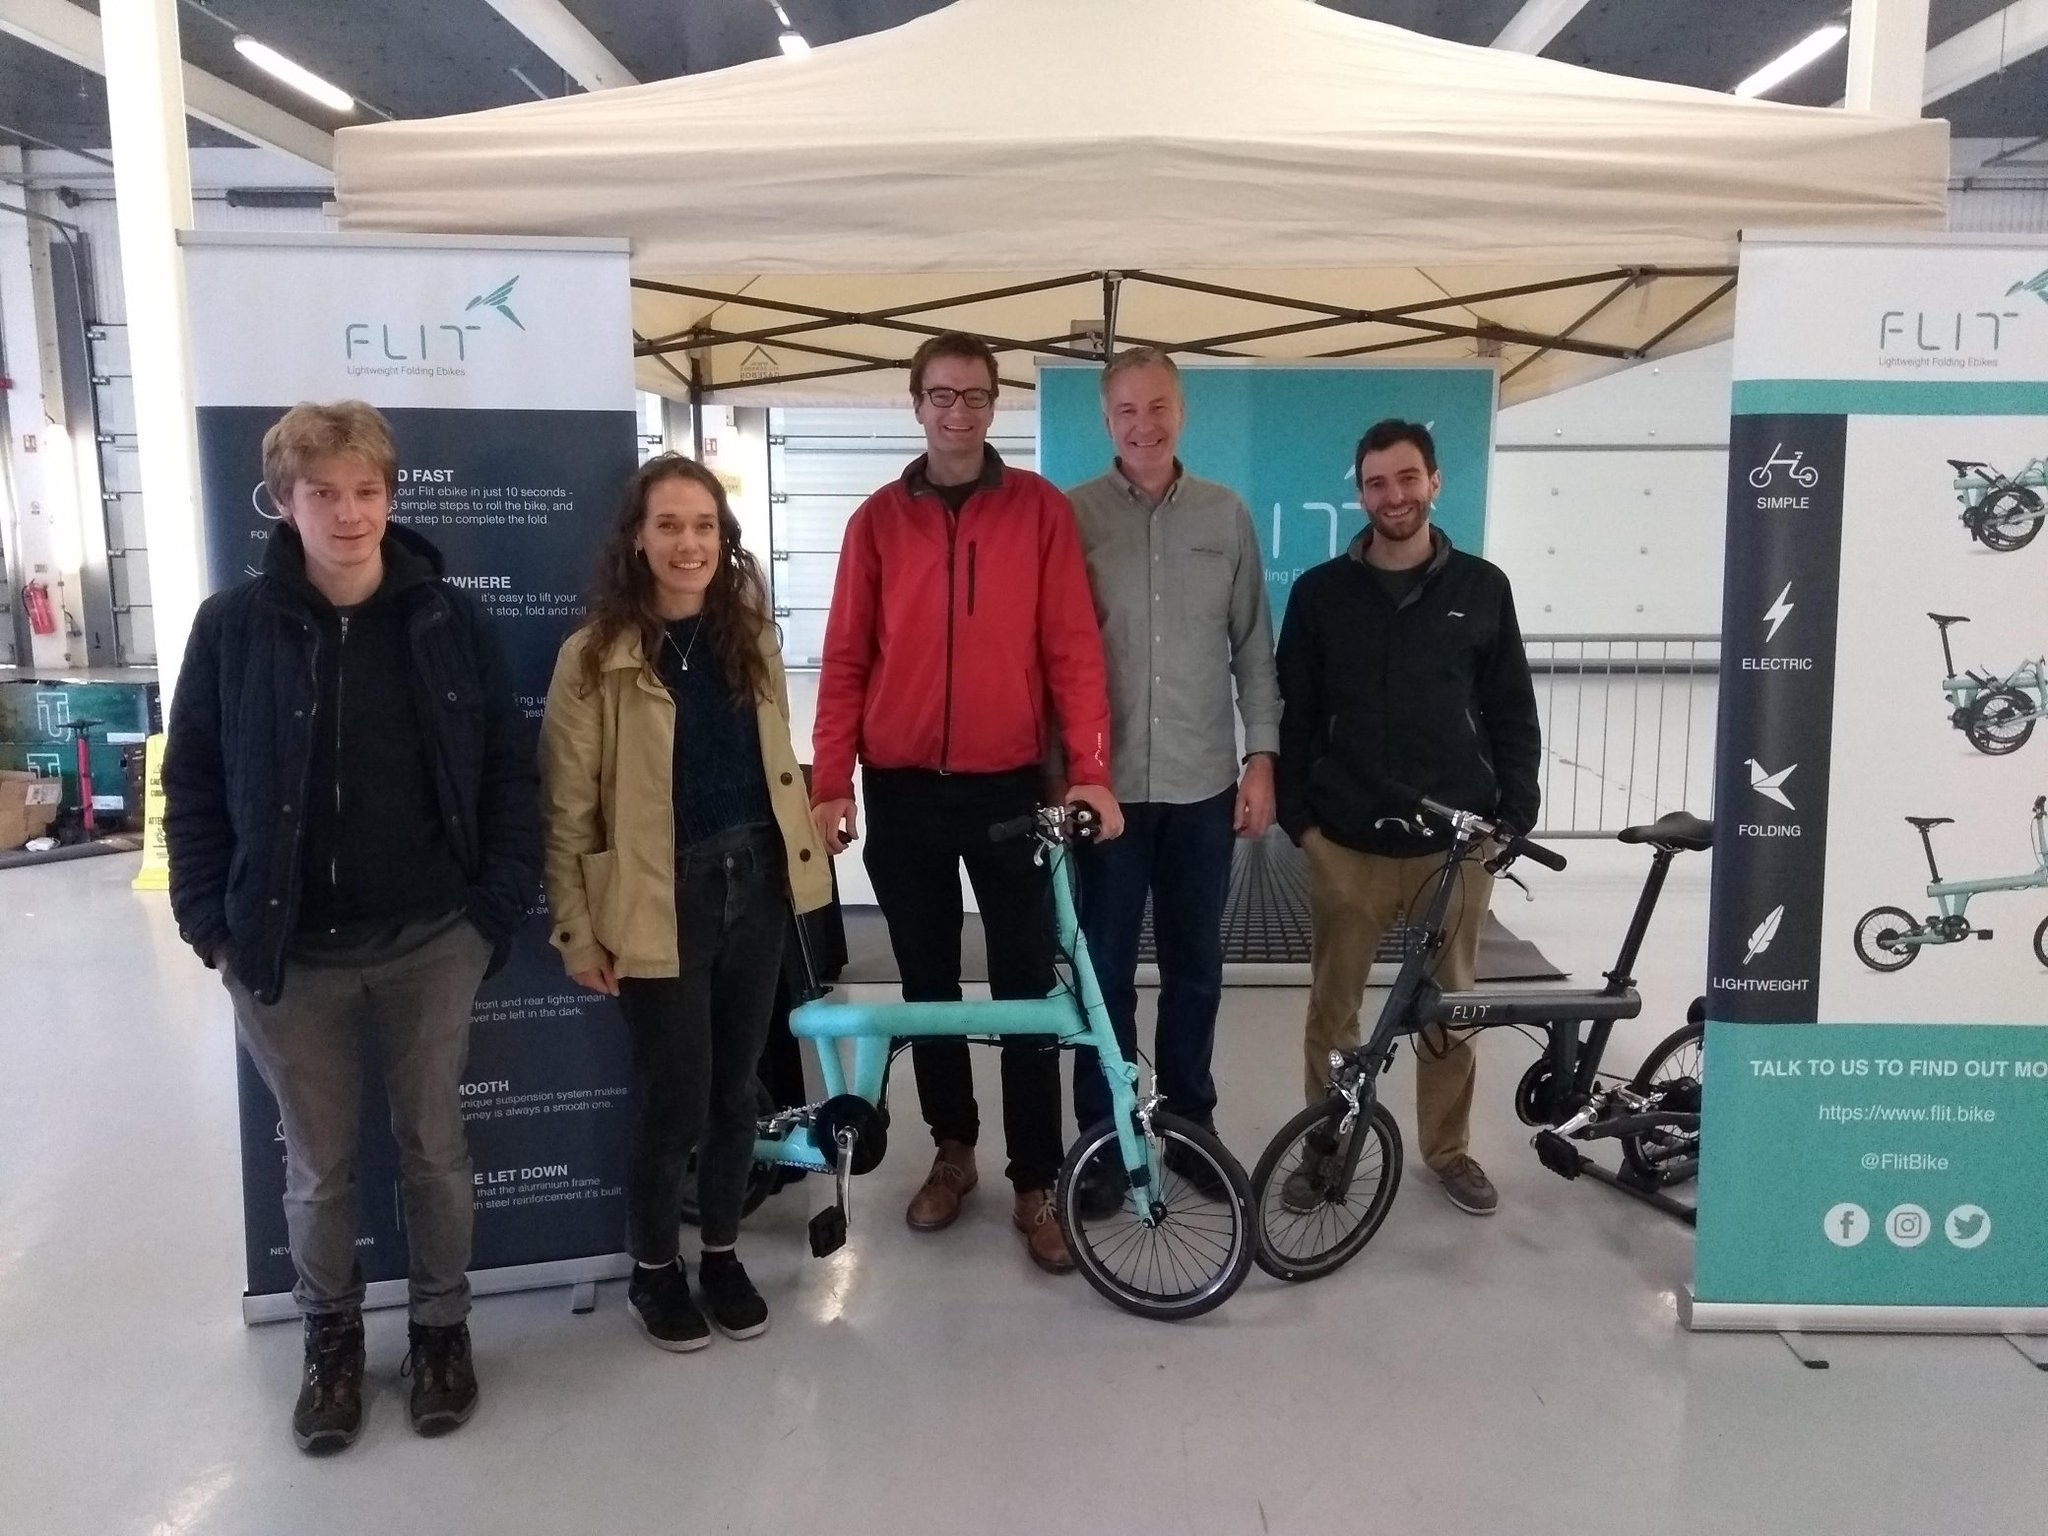 Flit lightweight folding ebike - at Fully Charged LIVE